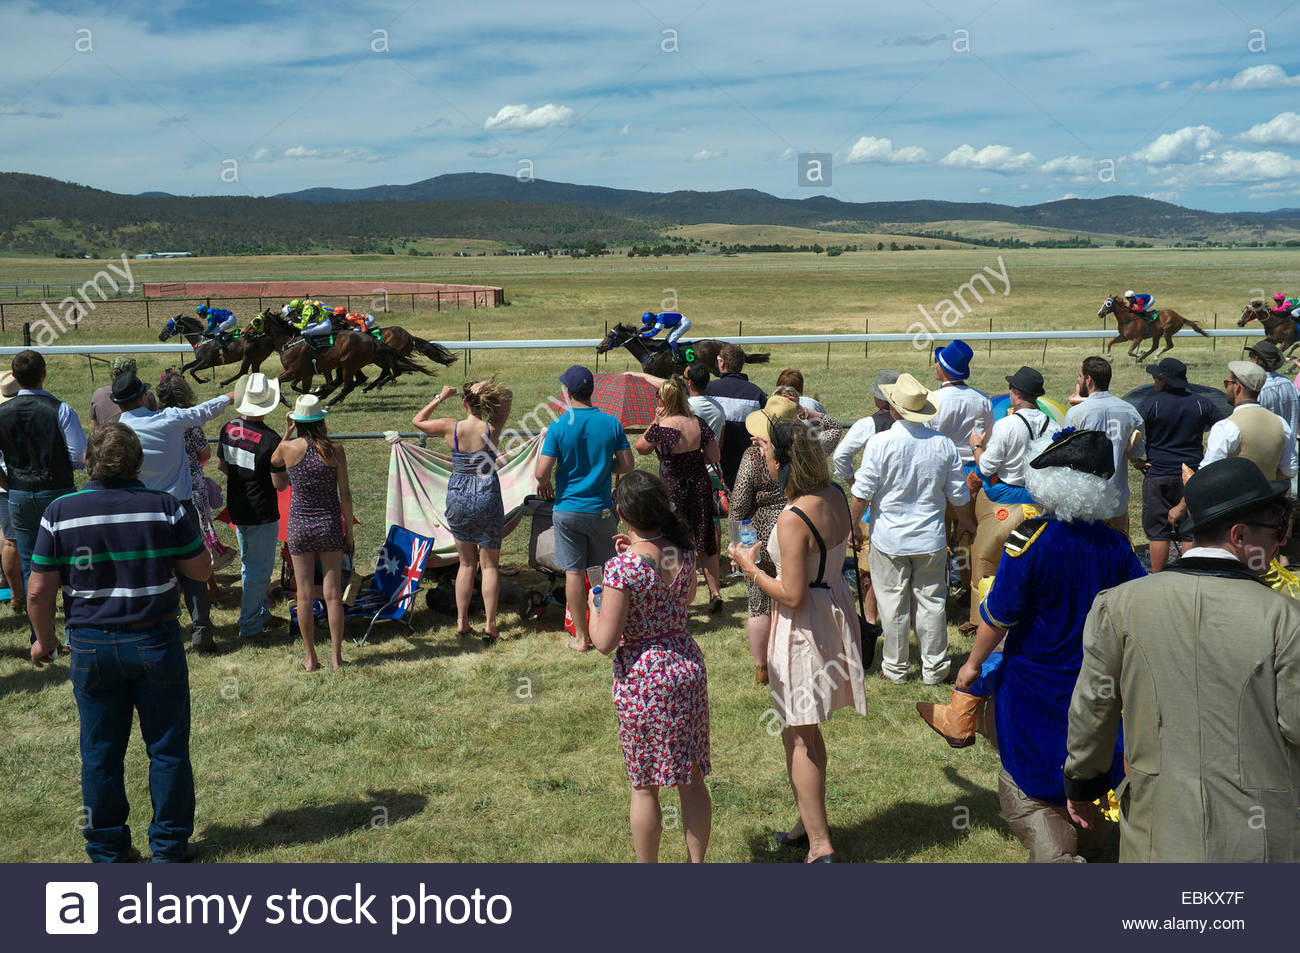 Spectators at the Adaminaby Races (horse racing), in the Snowy Mountains, New South Wales, Australia. - Stock Image